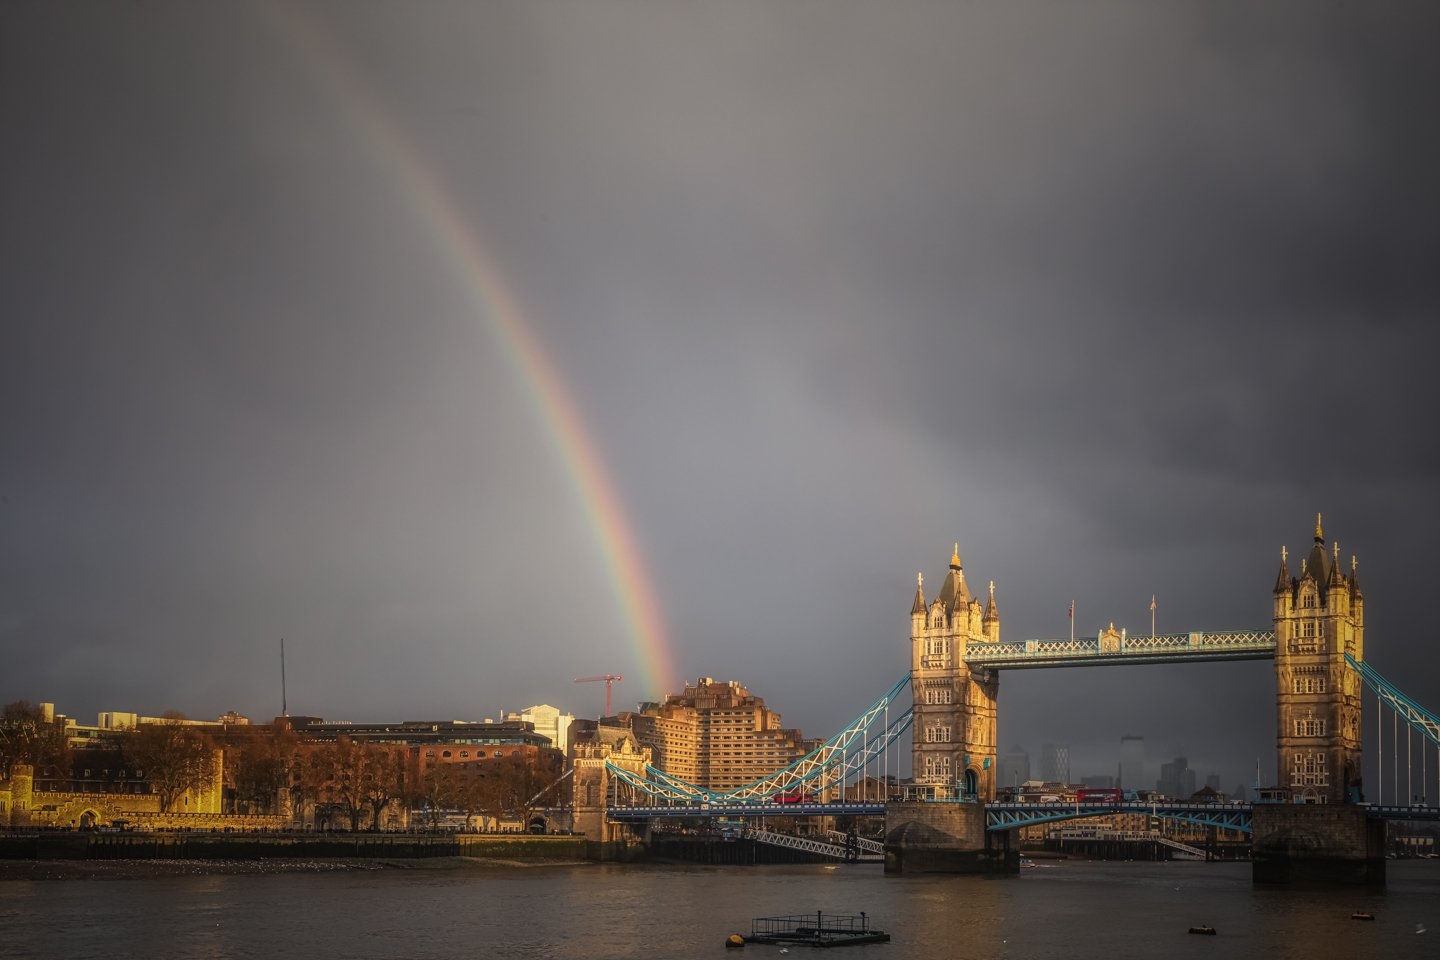 Rainbow over Tower Bridge, London